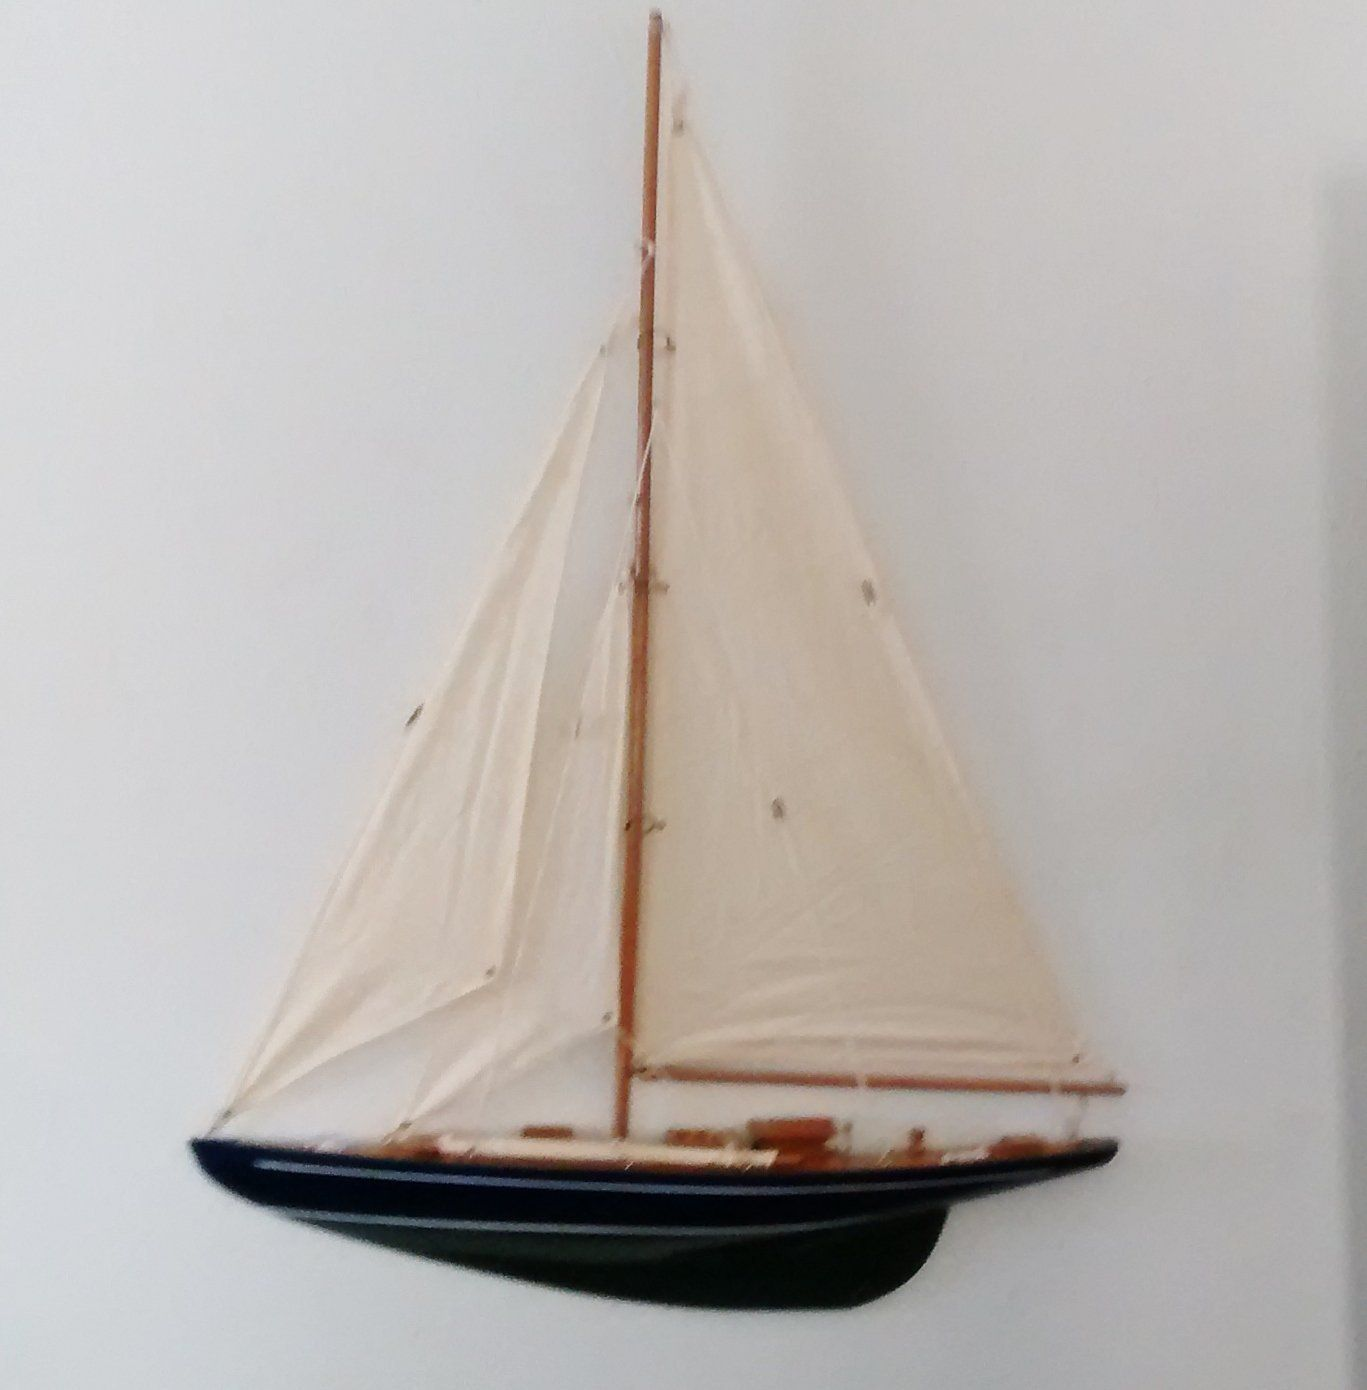 brass sailboats wall art vintage mid century by beautalicious decorate pinterest walls and decorating also rh